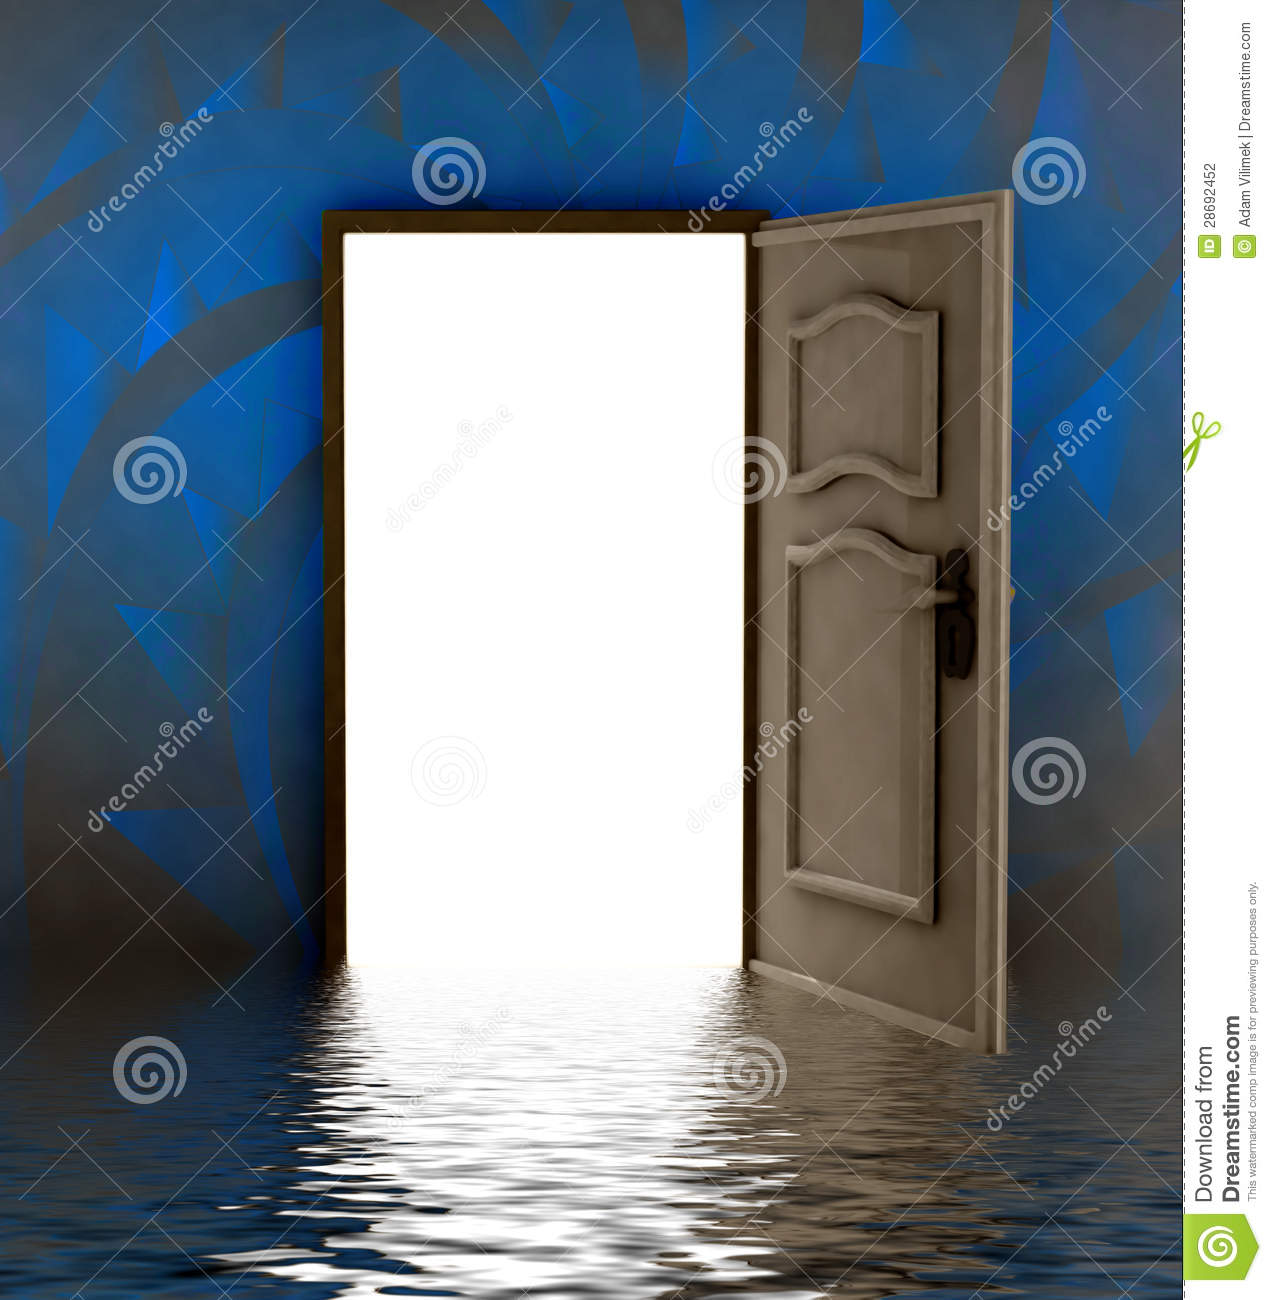 Royalty-Free Stock Photo & Opened Door I Water With Blue Painted Wall Stock Illustration ...